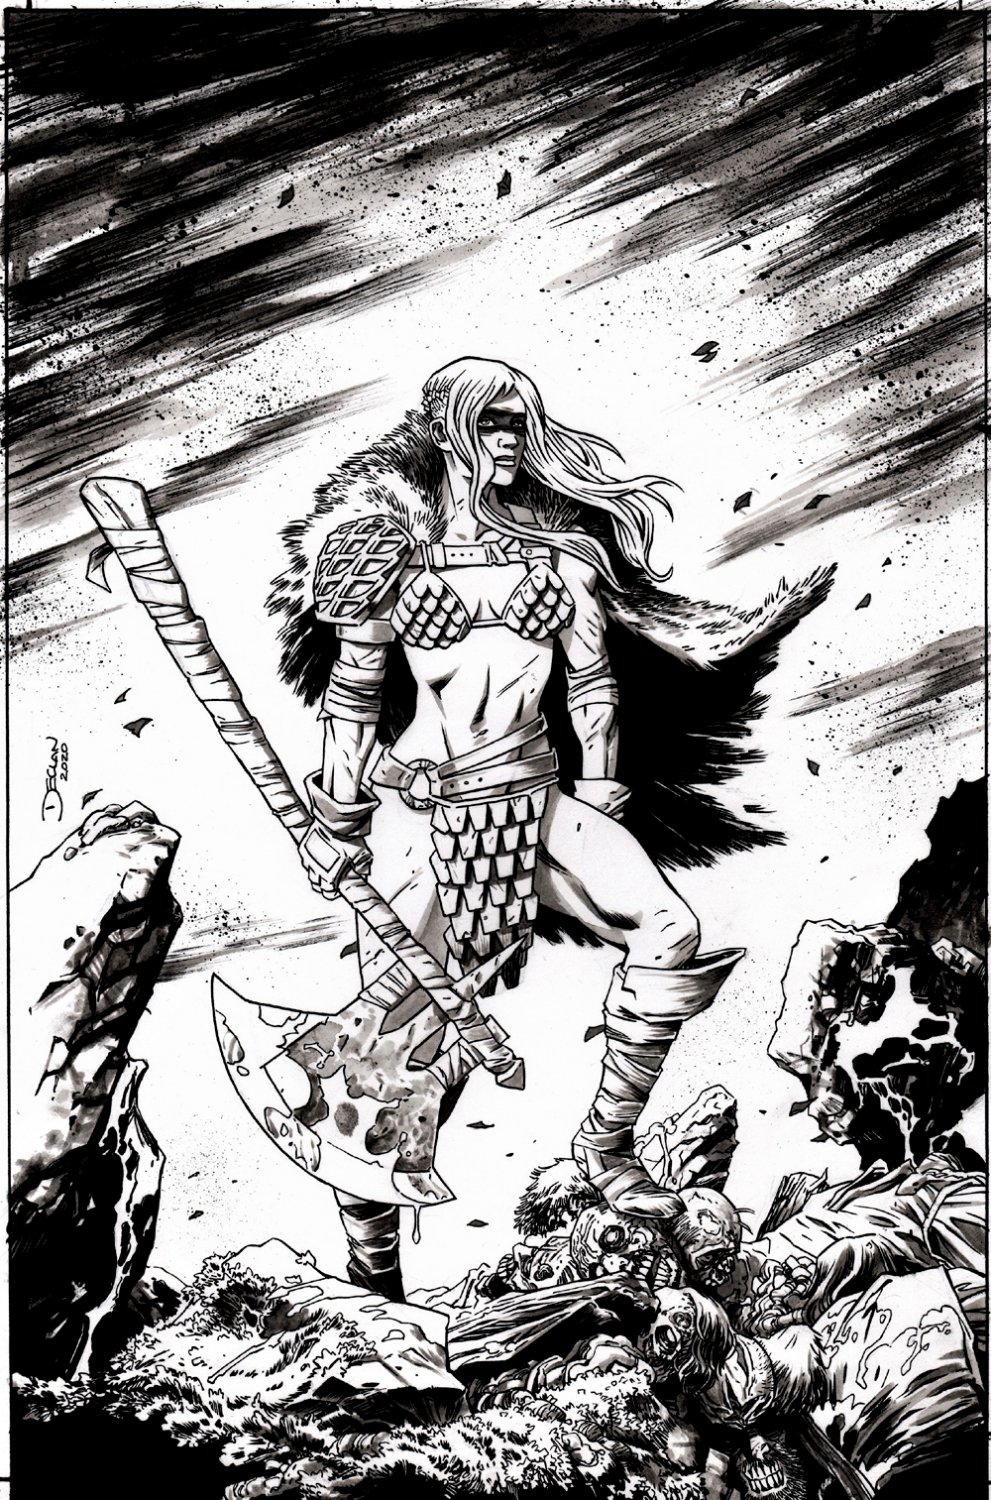 Die!namite #2 Cover (Red Sonja Stands Over Multiple Decapitated Heads & bodies!) 2020